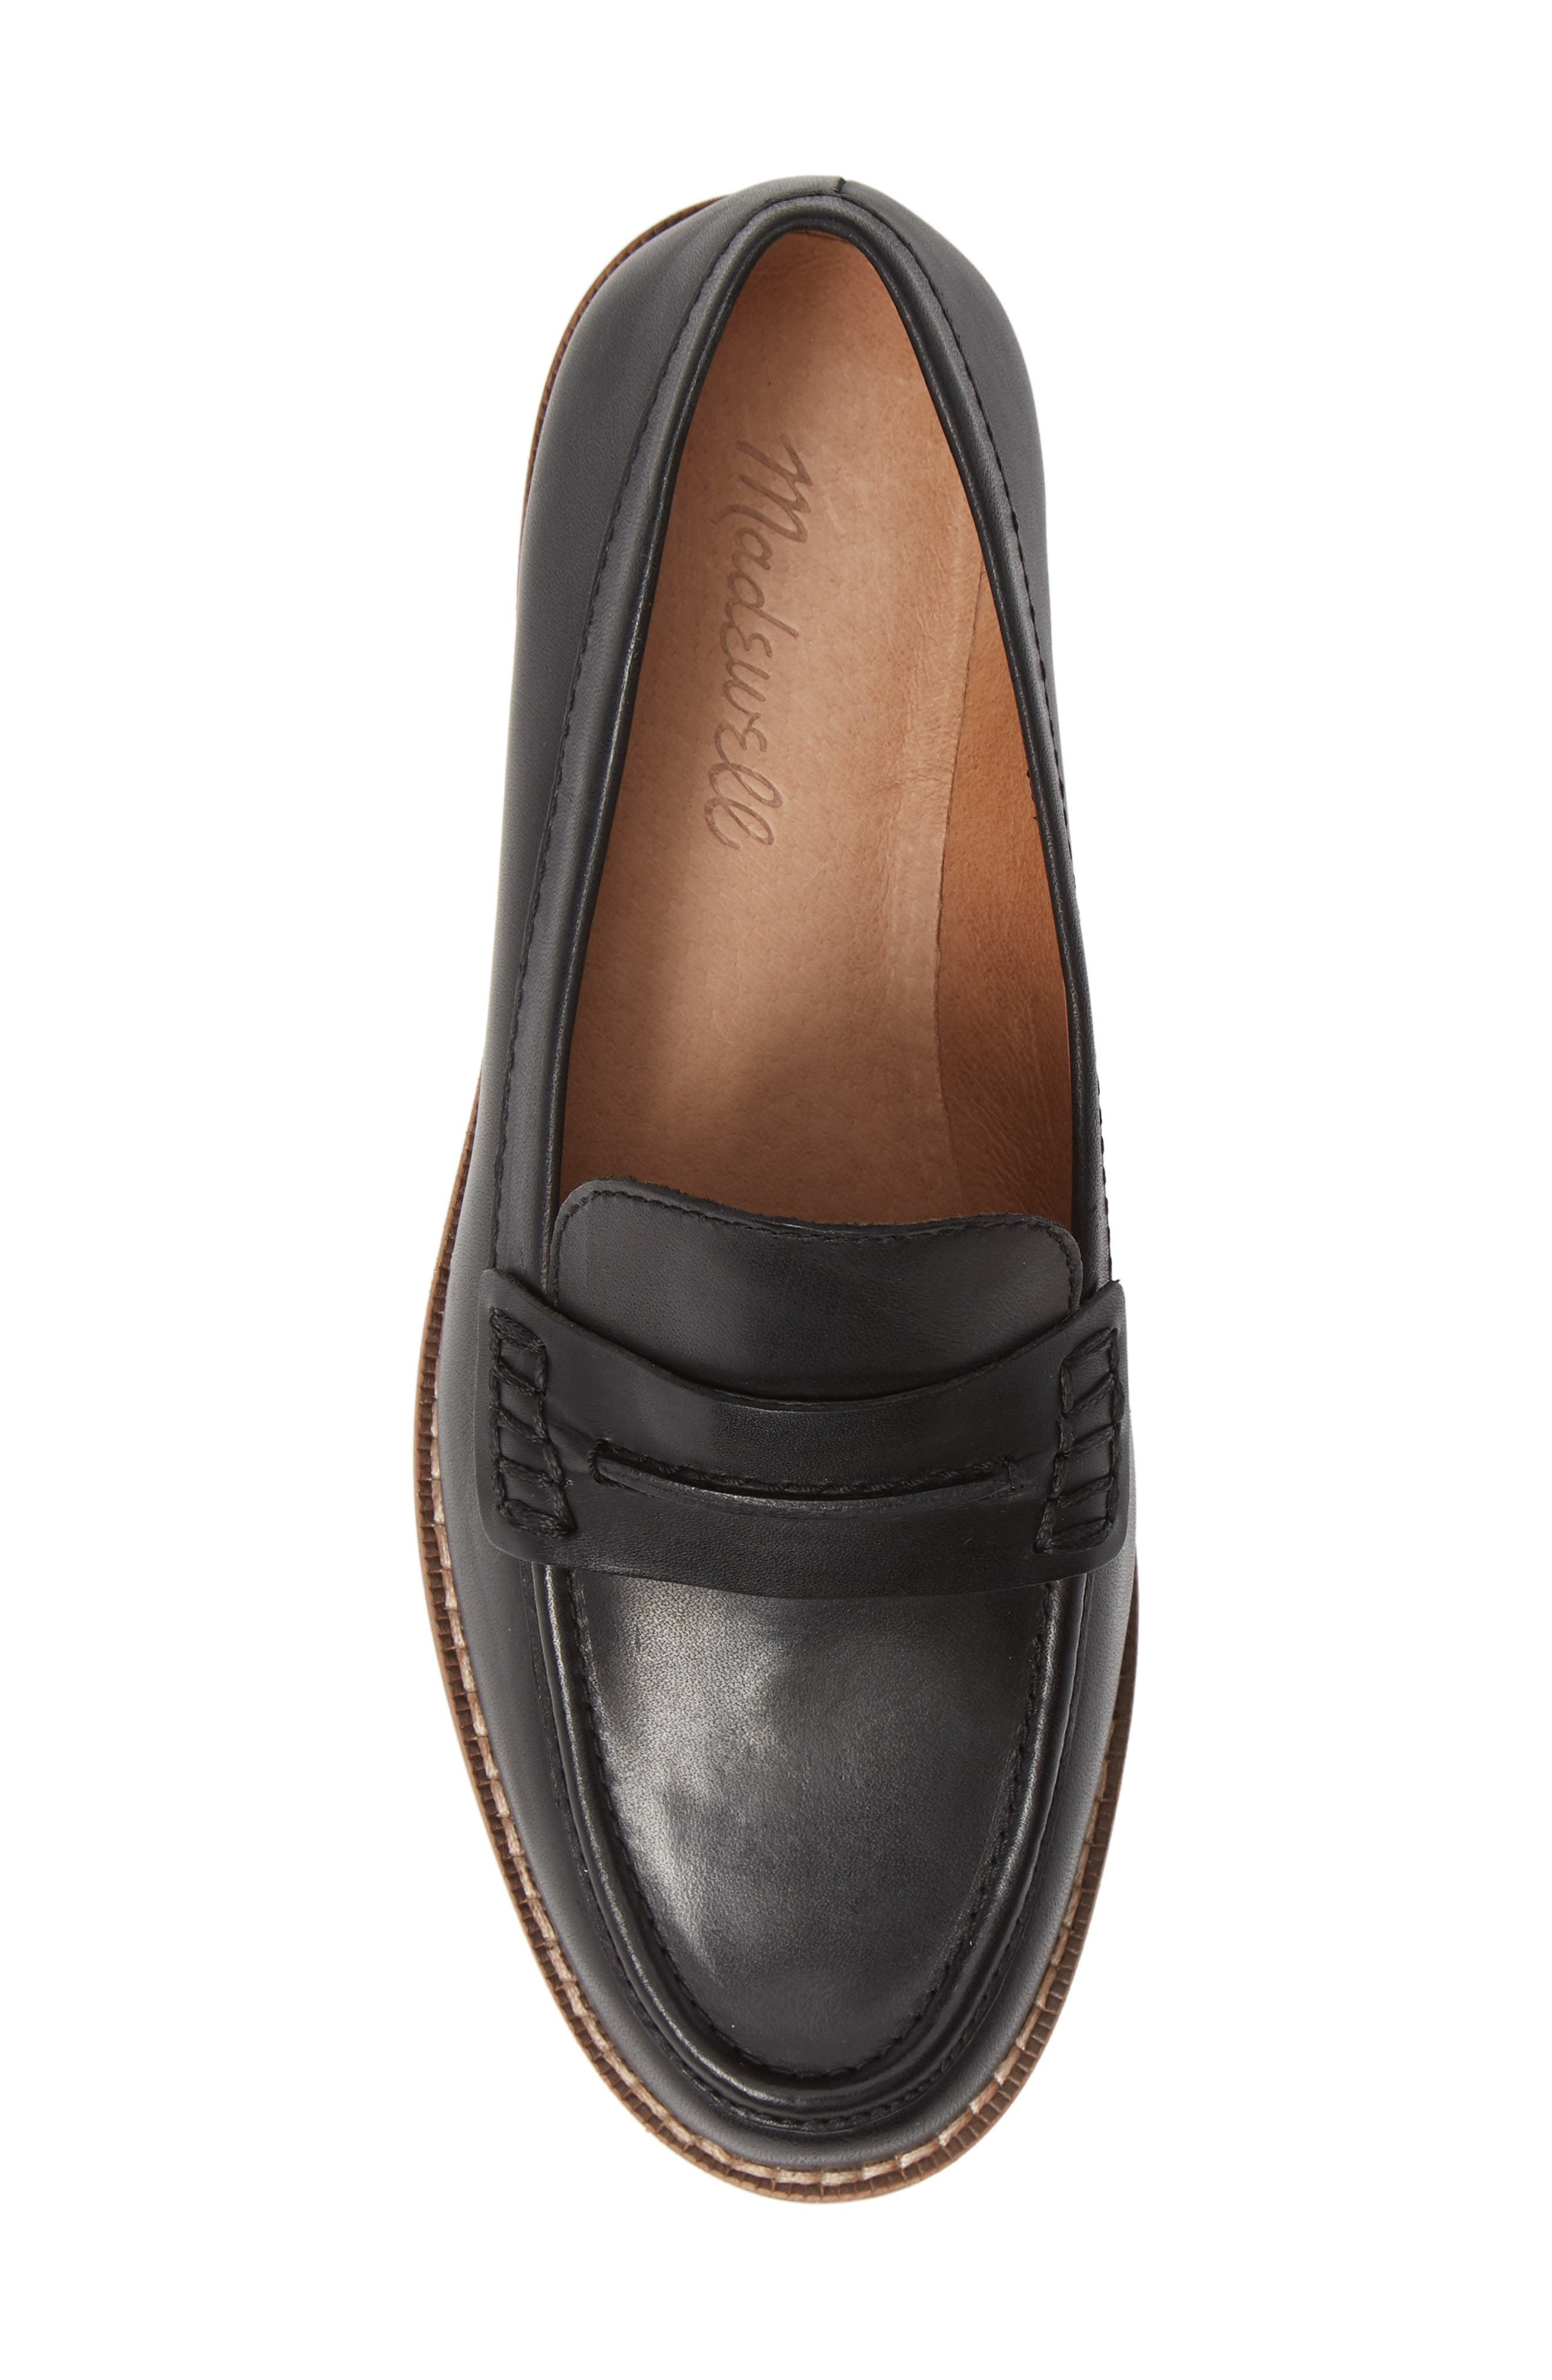 MADEWELL, The Elinor Loafer, Alternate thumbnail 5, color, BLACK LEATHER